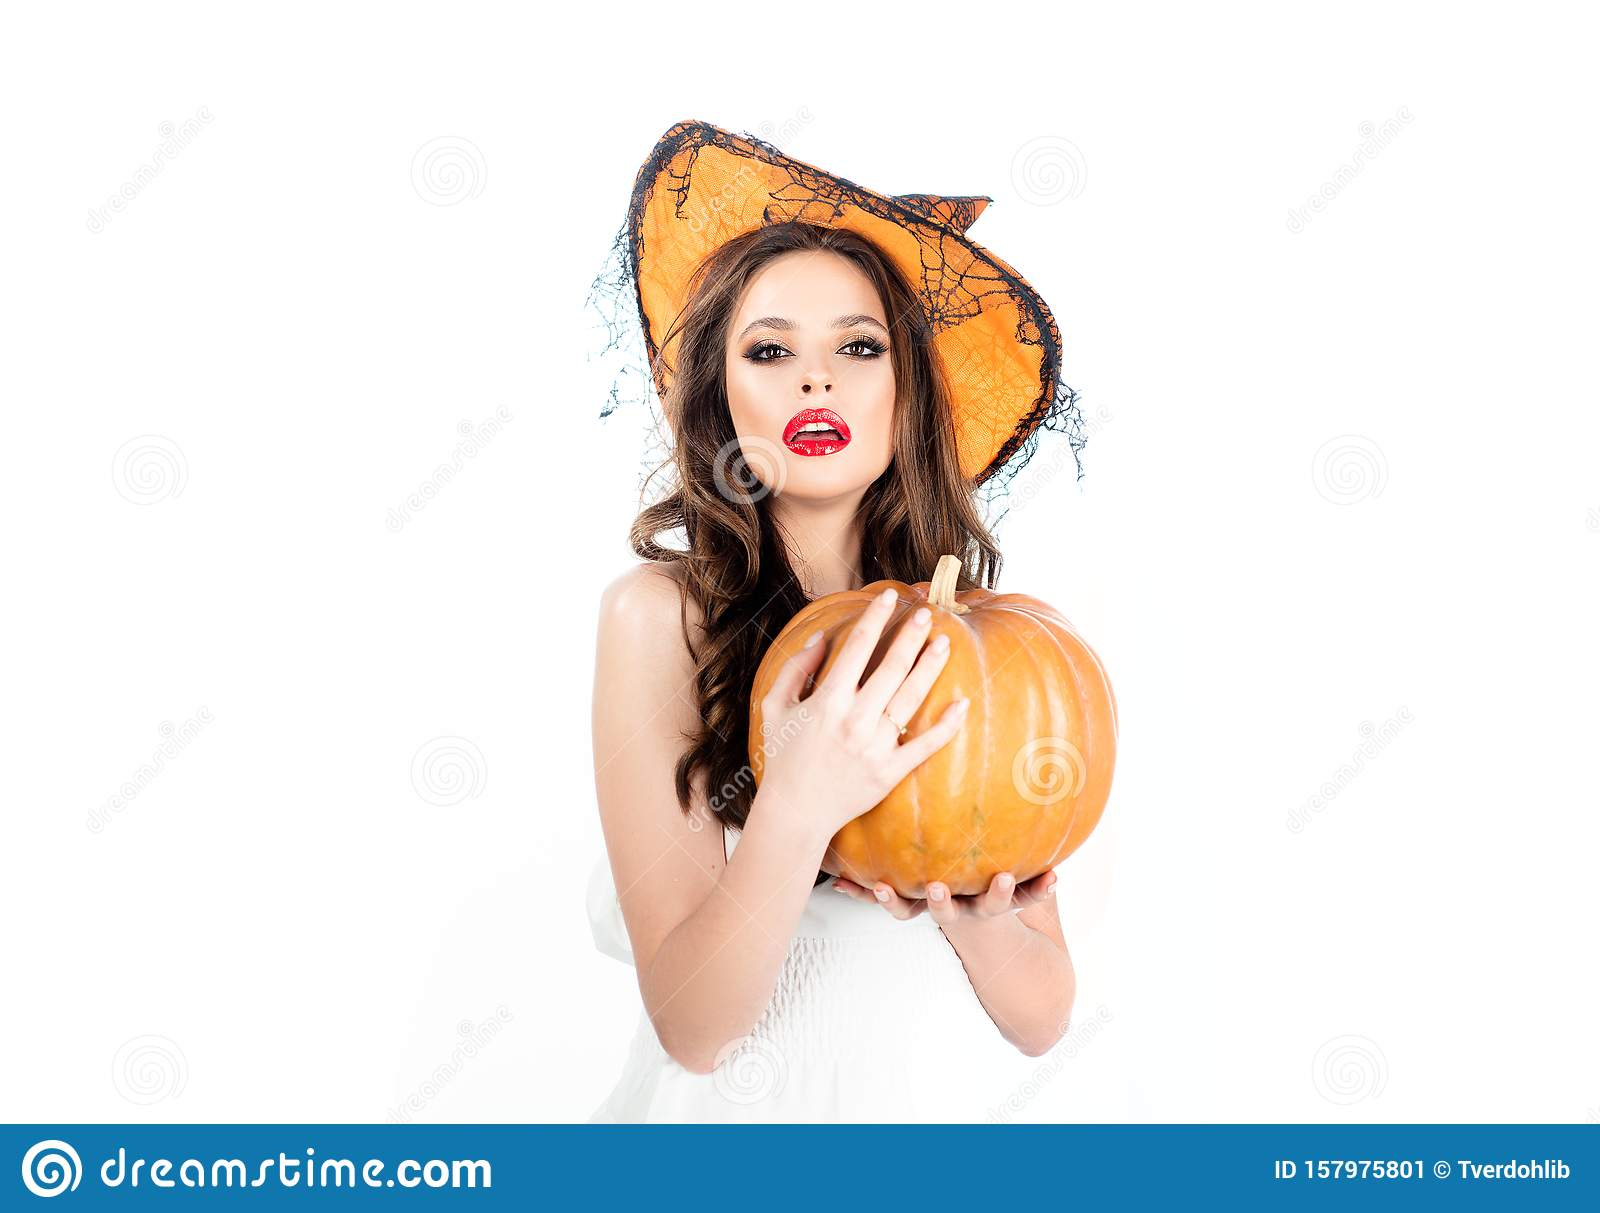 Young woman with witch hat dressed as vampire for Halloween party - isolated on white background. Vampire woman on